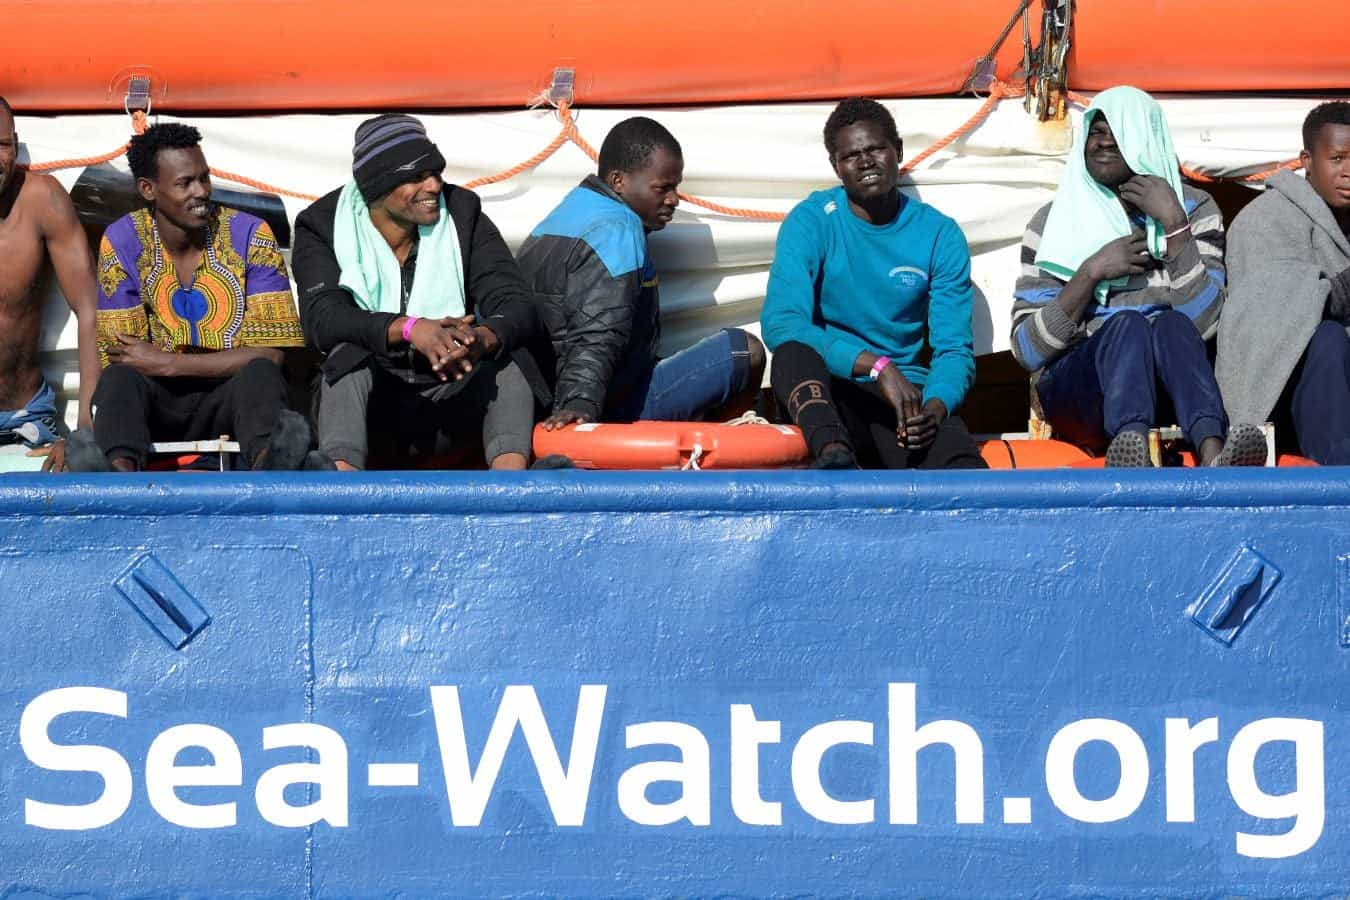 With Med crossing claiming 500 migrants this year, Europe warned it's about to risk more lives